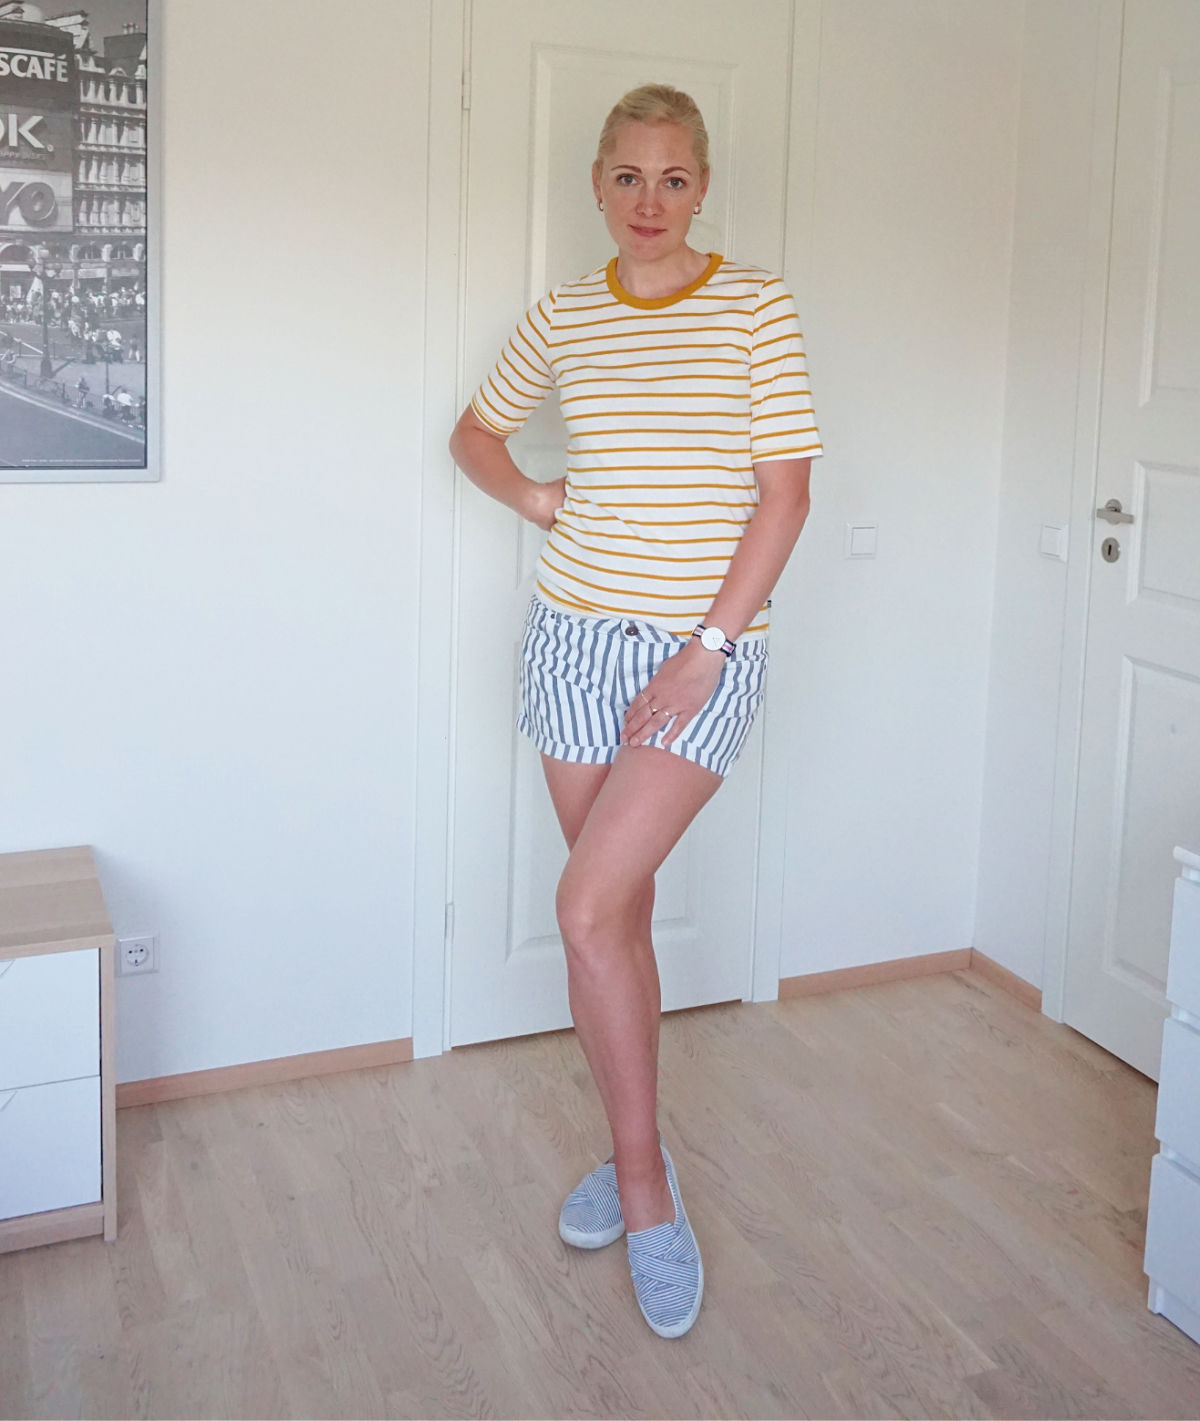 A simple stripes on stripes outfit for summer.